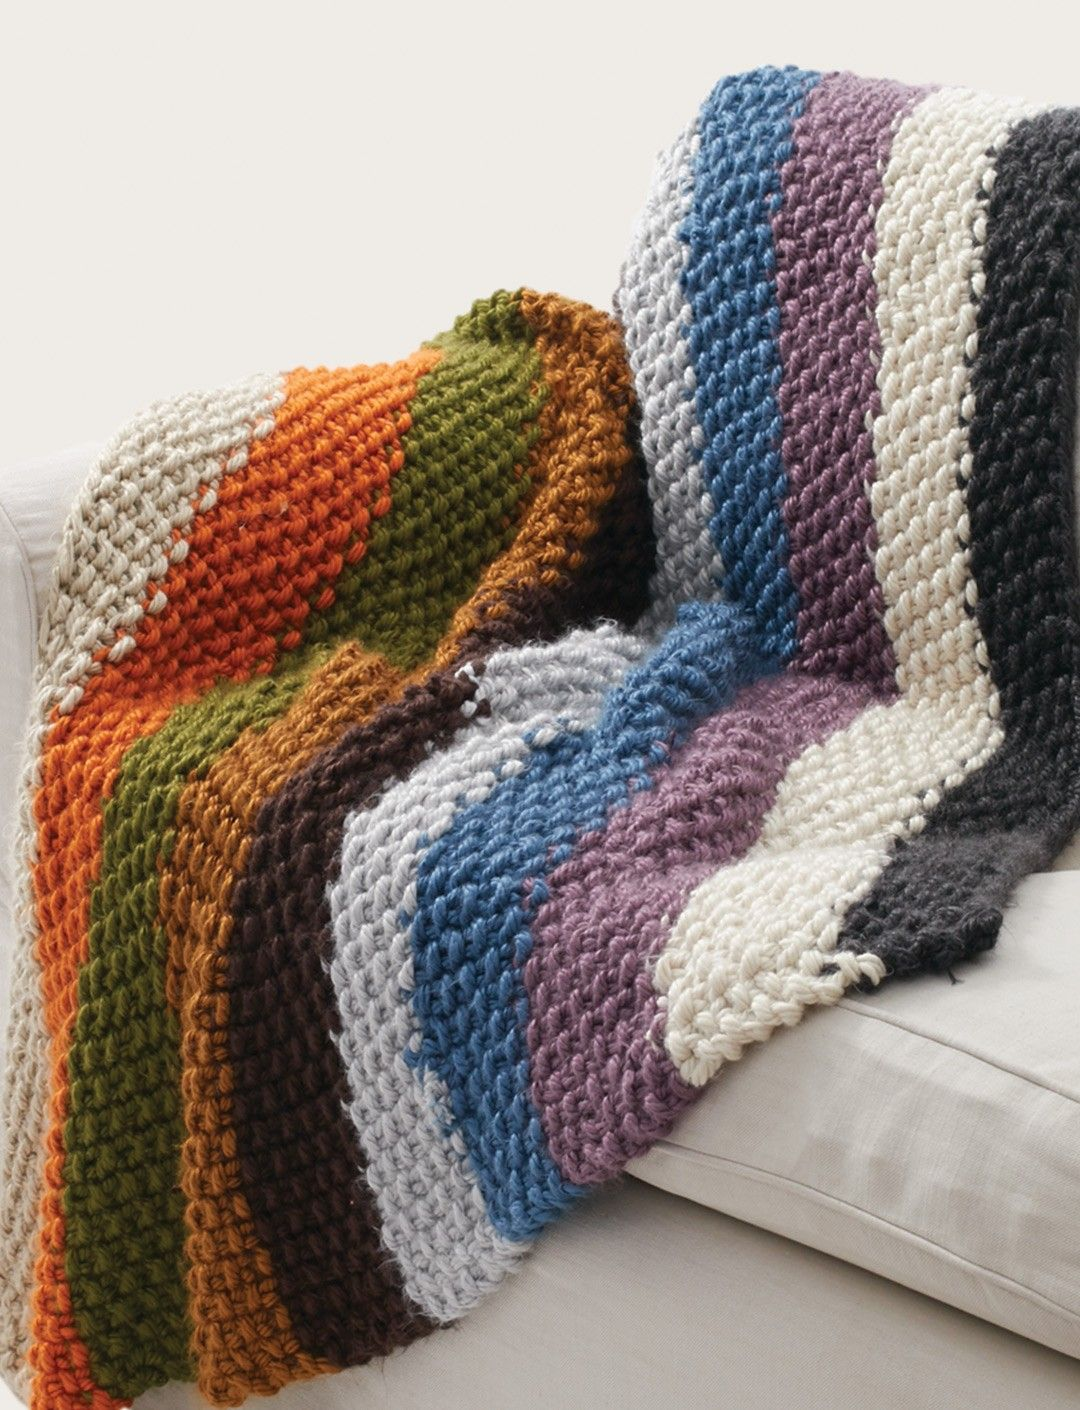 Bernat seed stitch blanket cozy chunky rainbow striped knit 27 knits you cant screw up easy knitting patterns for beginners this looks like a great use for extra random yarn dt1010fo